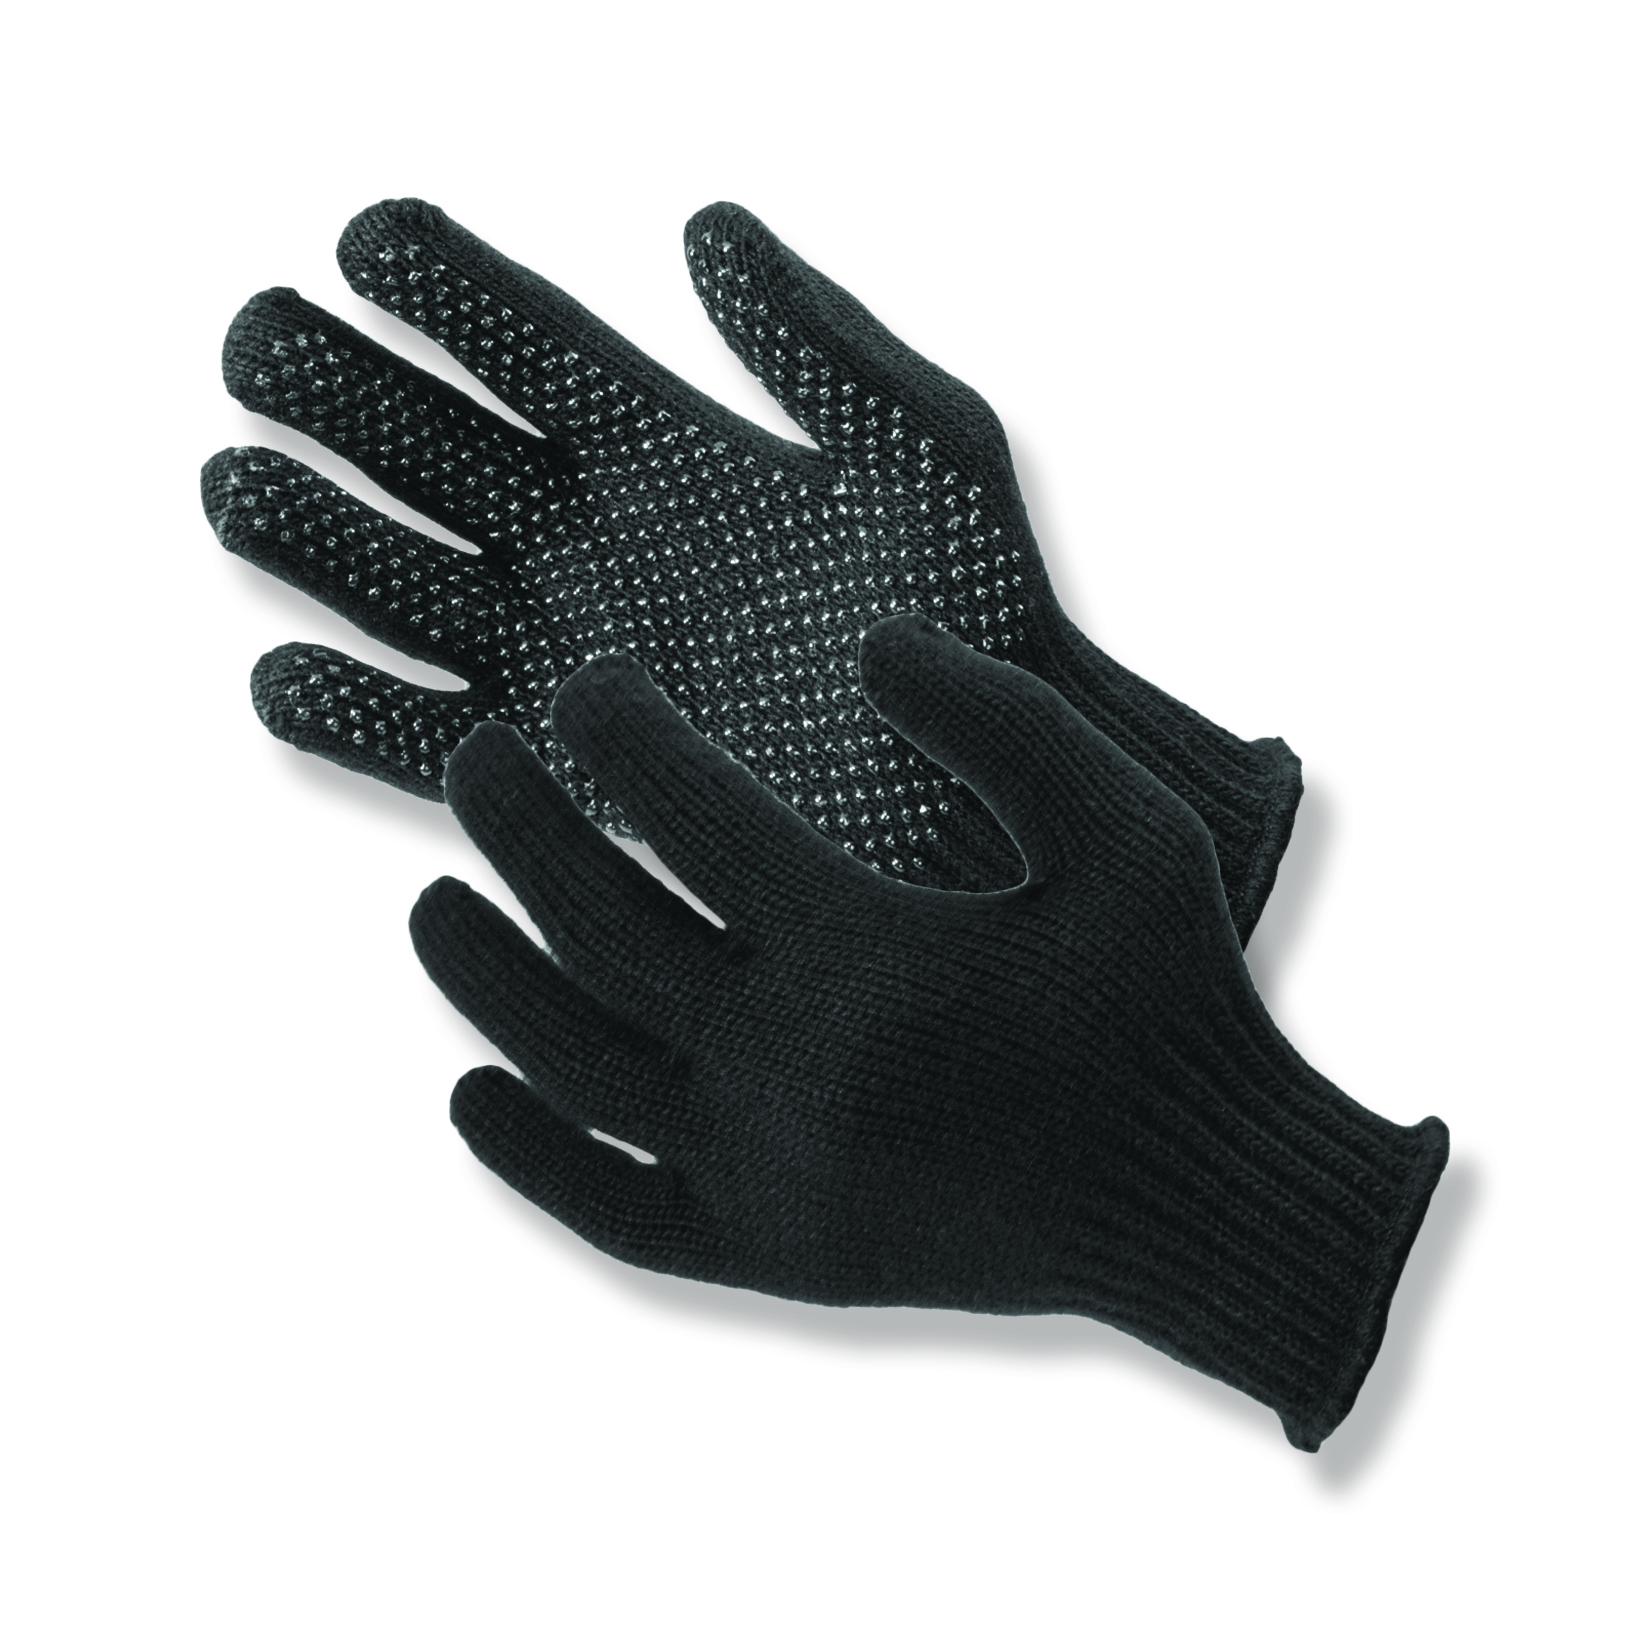 Made in USA. Gripper Dot™ black seamless knit 100% acrylic gloves